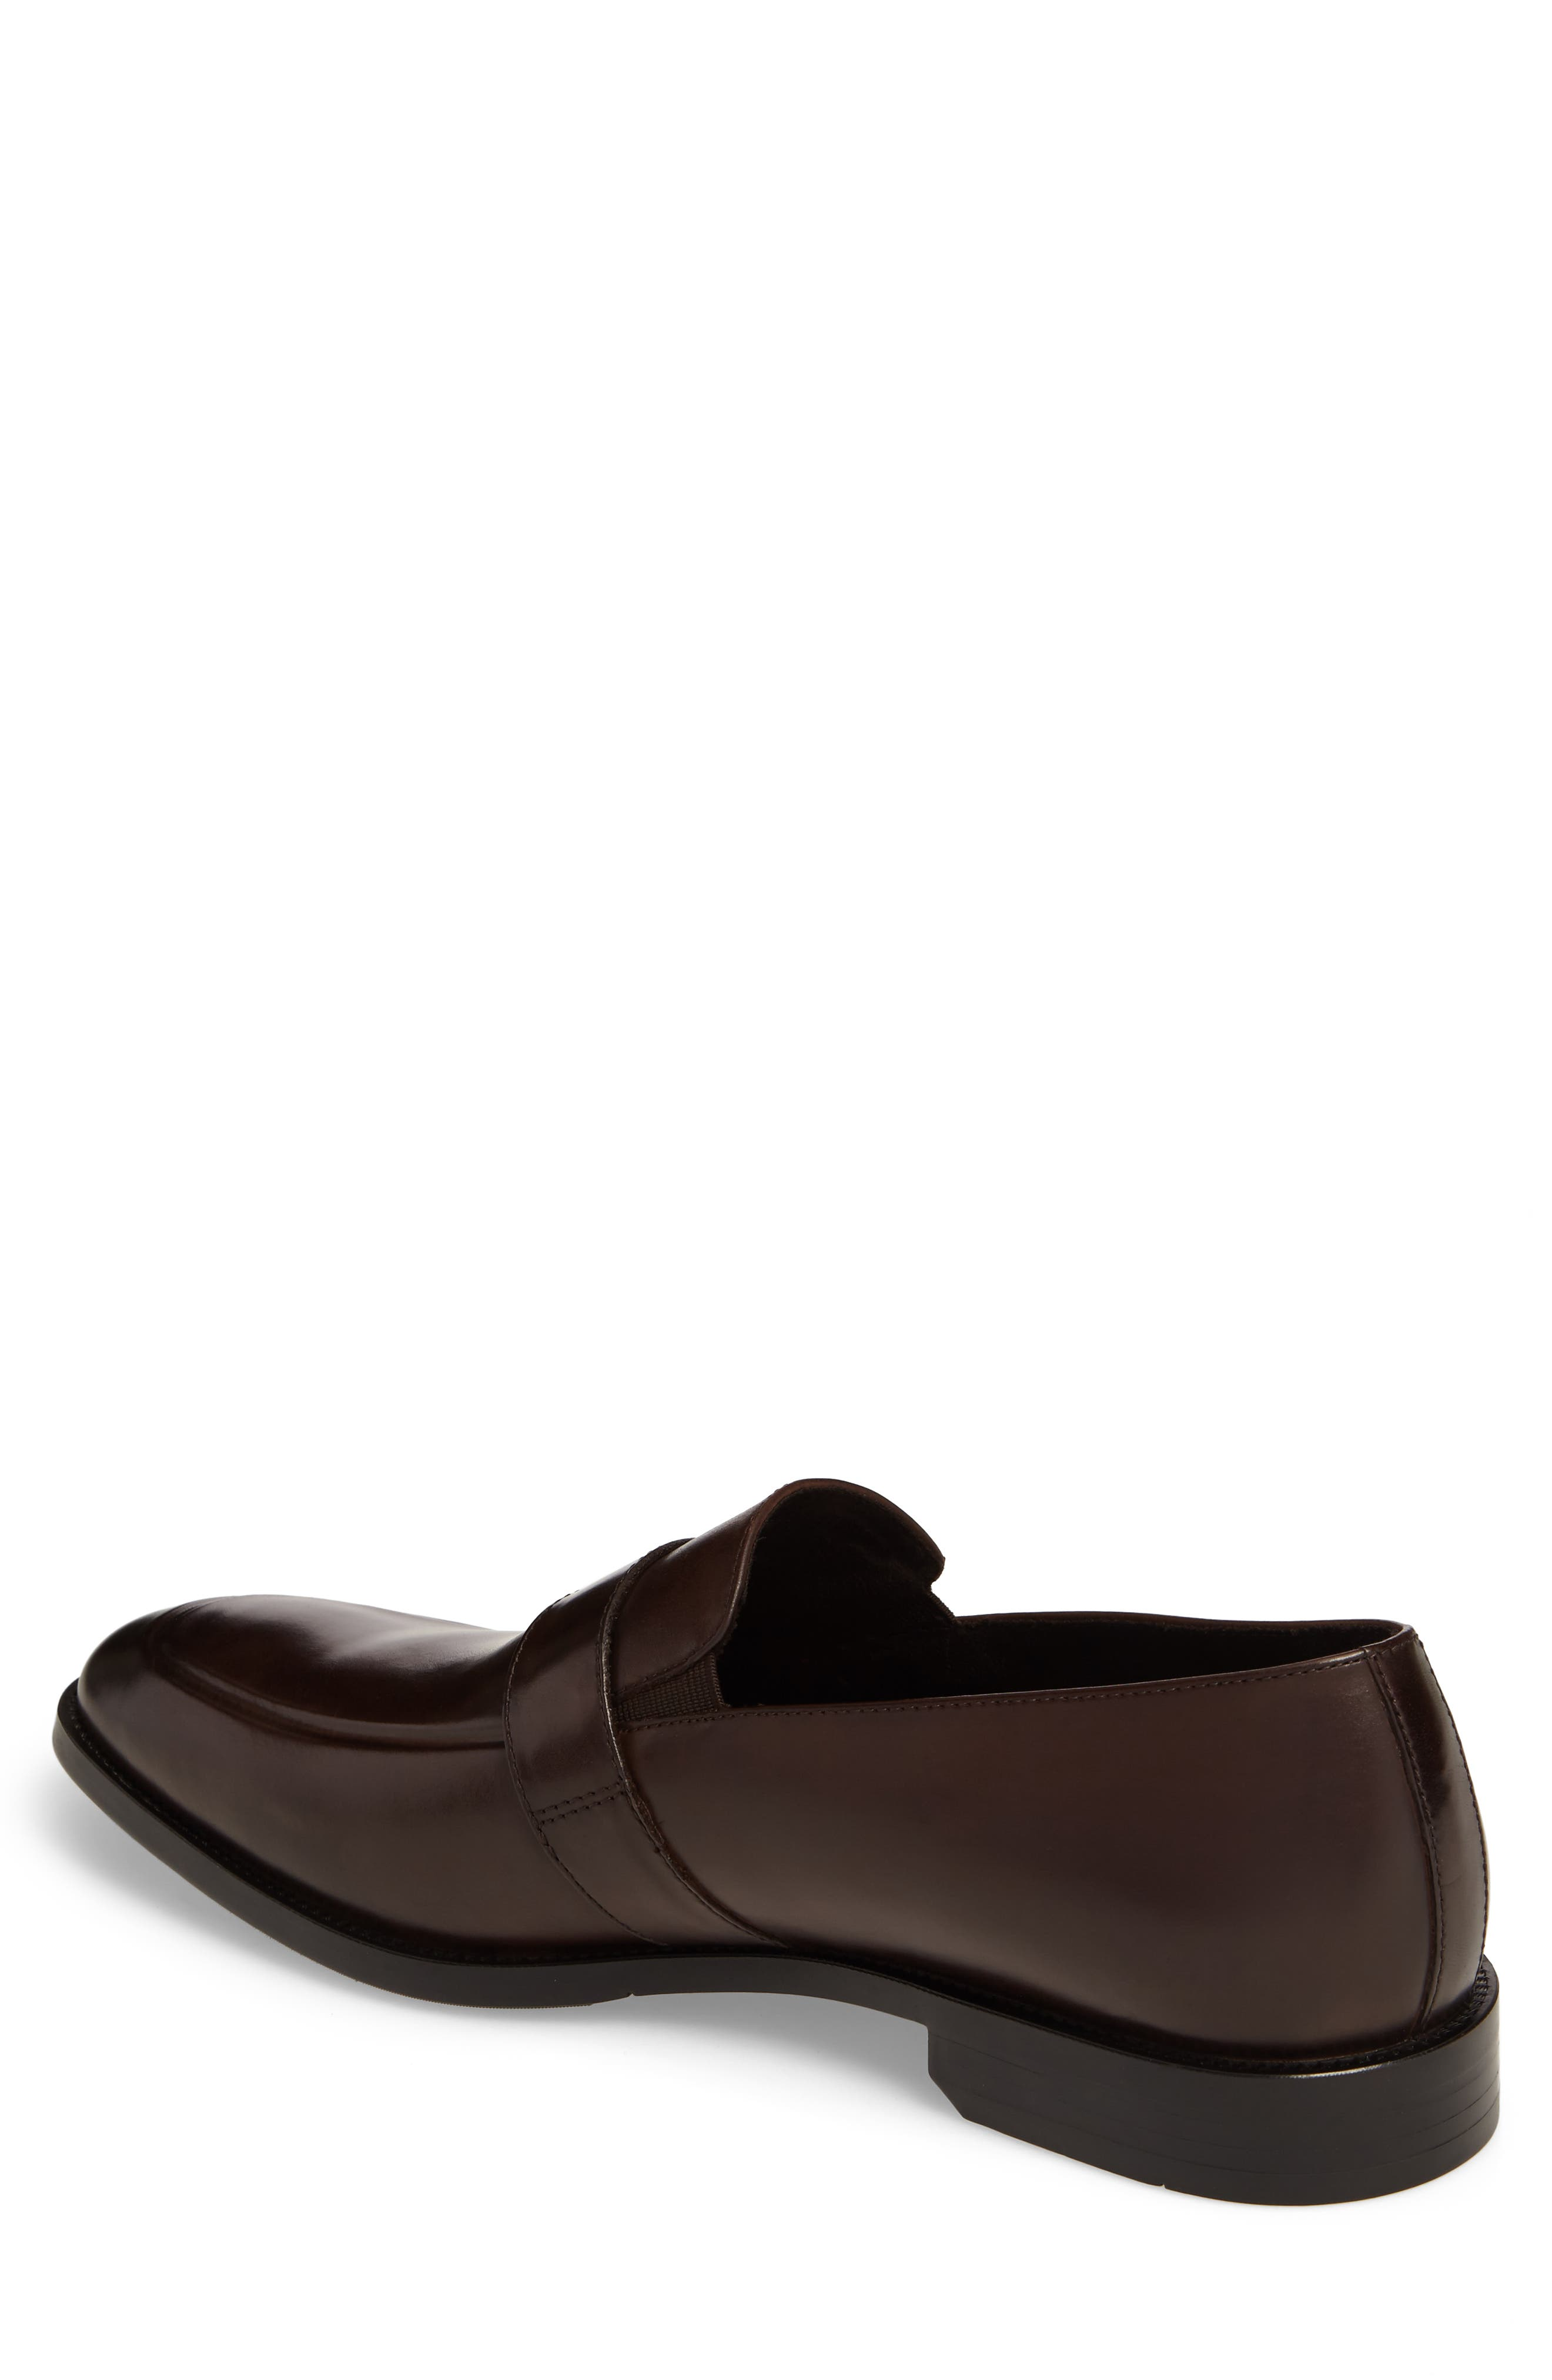 Apron Toe Loafer,                             Alternate thumbnail 2, color,                             Brown Leather